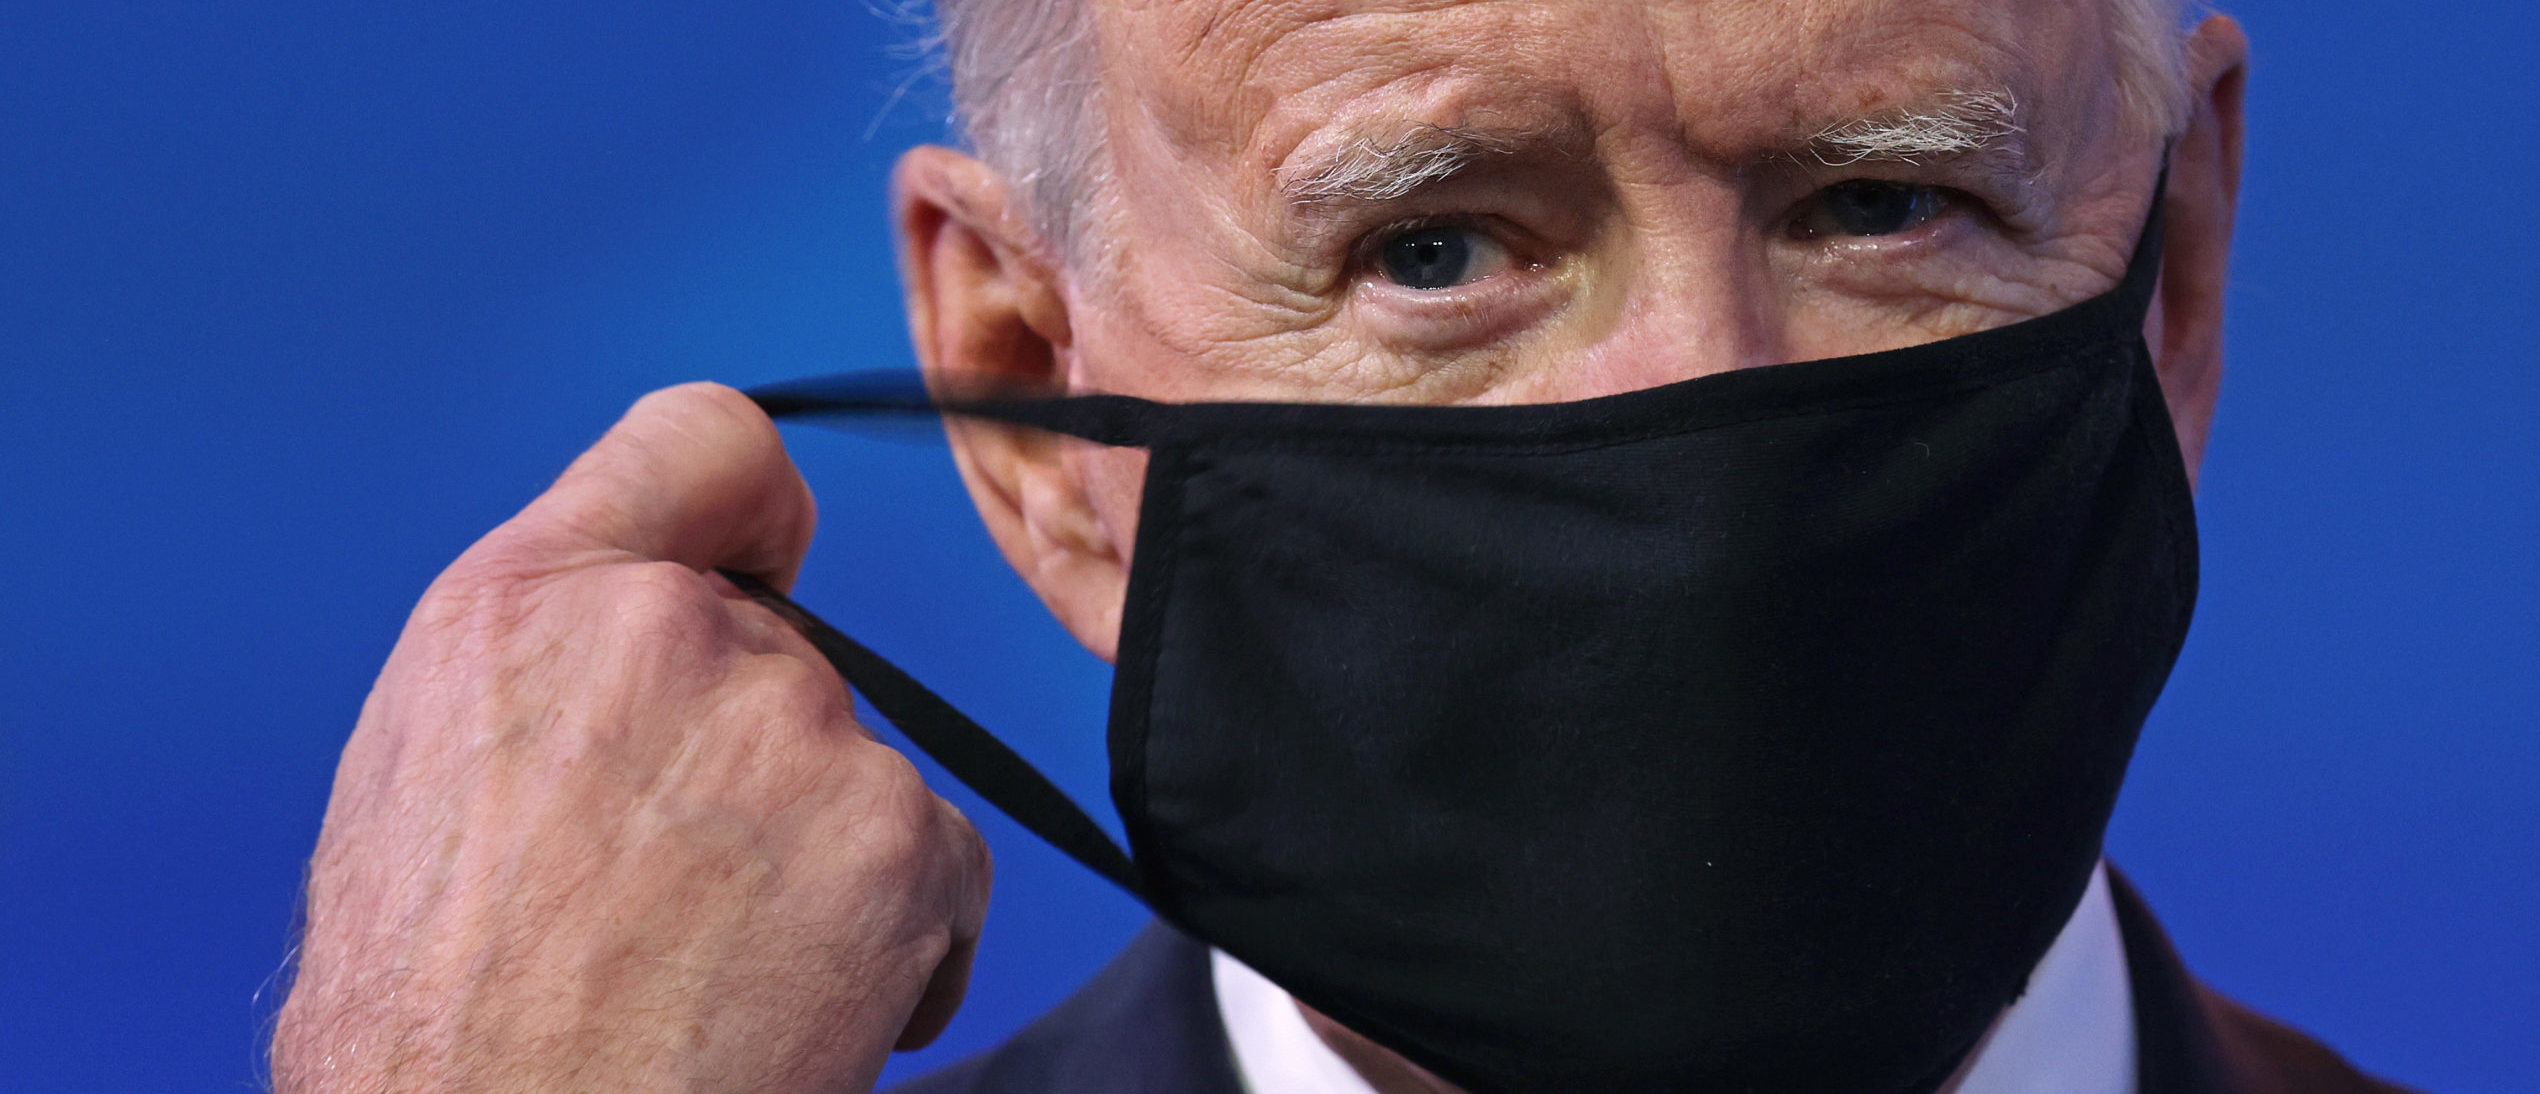 WILMINGTON, DELAWARE - JANUARY 15: U.S. President-elect Joe Biden takes off his mask as he arrives at the Queen theater to lay out his plan on combating the coronavirus January 15, 2021 in Wilmington, Delaware. President-elect Biden is announcing his plan to administer COVID-19 vaccines to Americans. (Photo by Alex Wong/Getty Images)